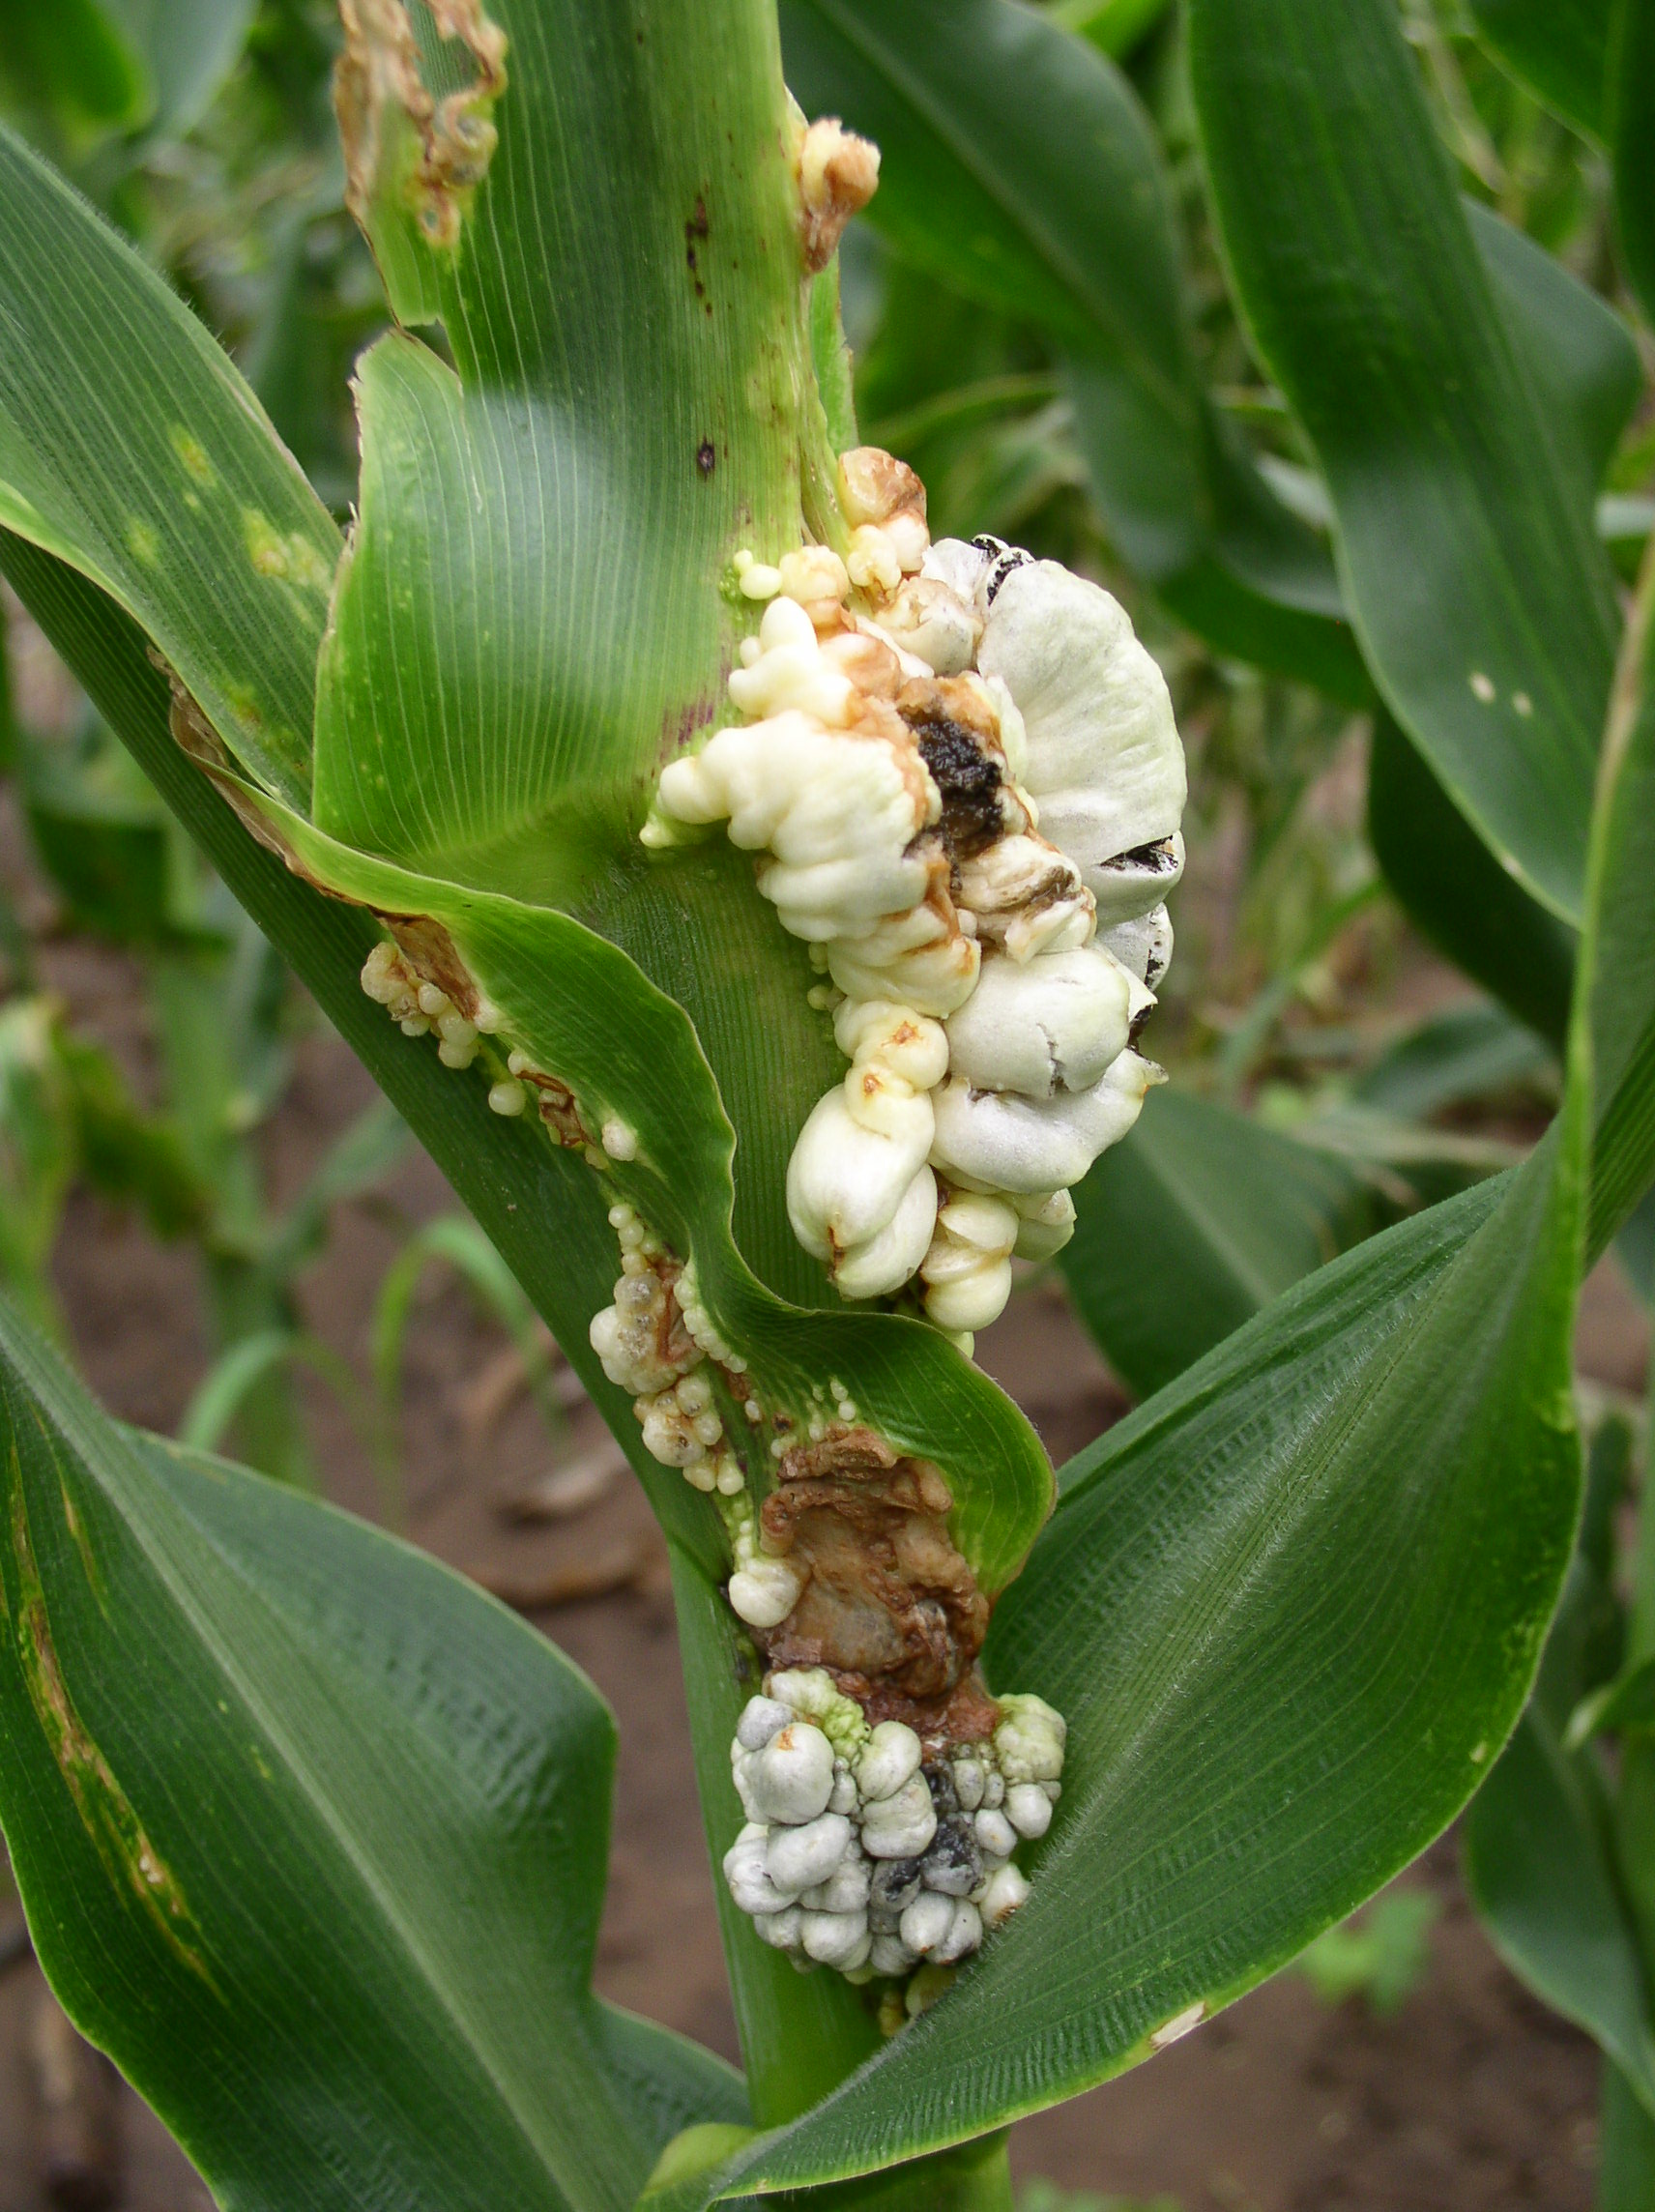 Common smut galls can form on stalks, leaves, ears, and tassels.